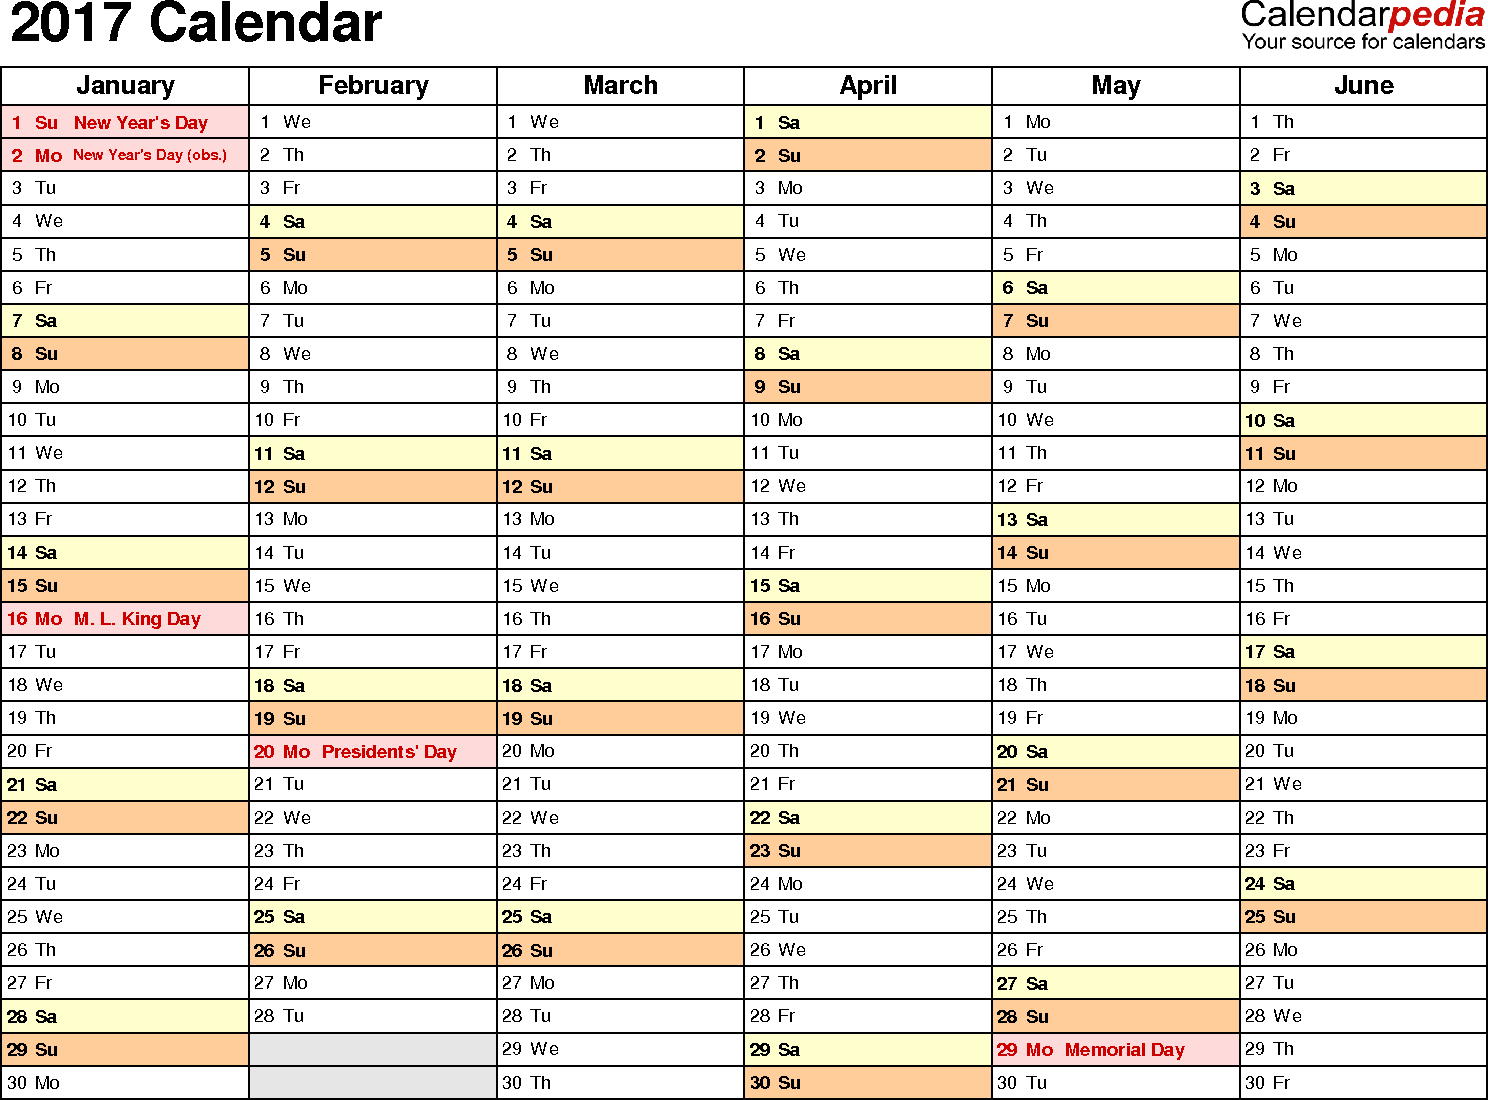 Ediblewildsus  Prepossessing  Calendar  Download  Free Printable Excel Templates Xls With Hot Template   Calendar For Excel Months Horizontally  Pages Landscape Orientation With Beauteous Excel Project Planner Also Test Statistic In Excel In Addition Excel Export To Pdf And Wrap Text Excel  As Well As How To Use The If Formula In Excel Additionally Excel Columns Numbers From Calendarpediacom With Ediblewildsus  Hot  Calendar  Download  Free Printable Excel Templates Xls With Beauteous Template   Calendar For Excel Months Horizontally  Pages Landscape Orientation And Prepossessing Excel Project Planner Also Test Statistic In Excel In Addition Excel Export To Pdf From Calendarpediacom